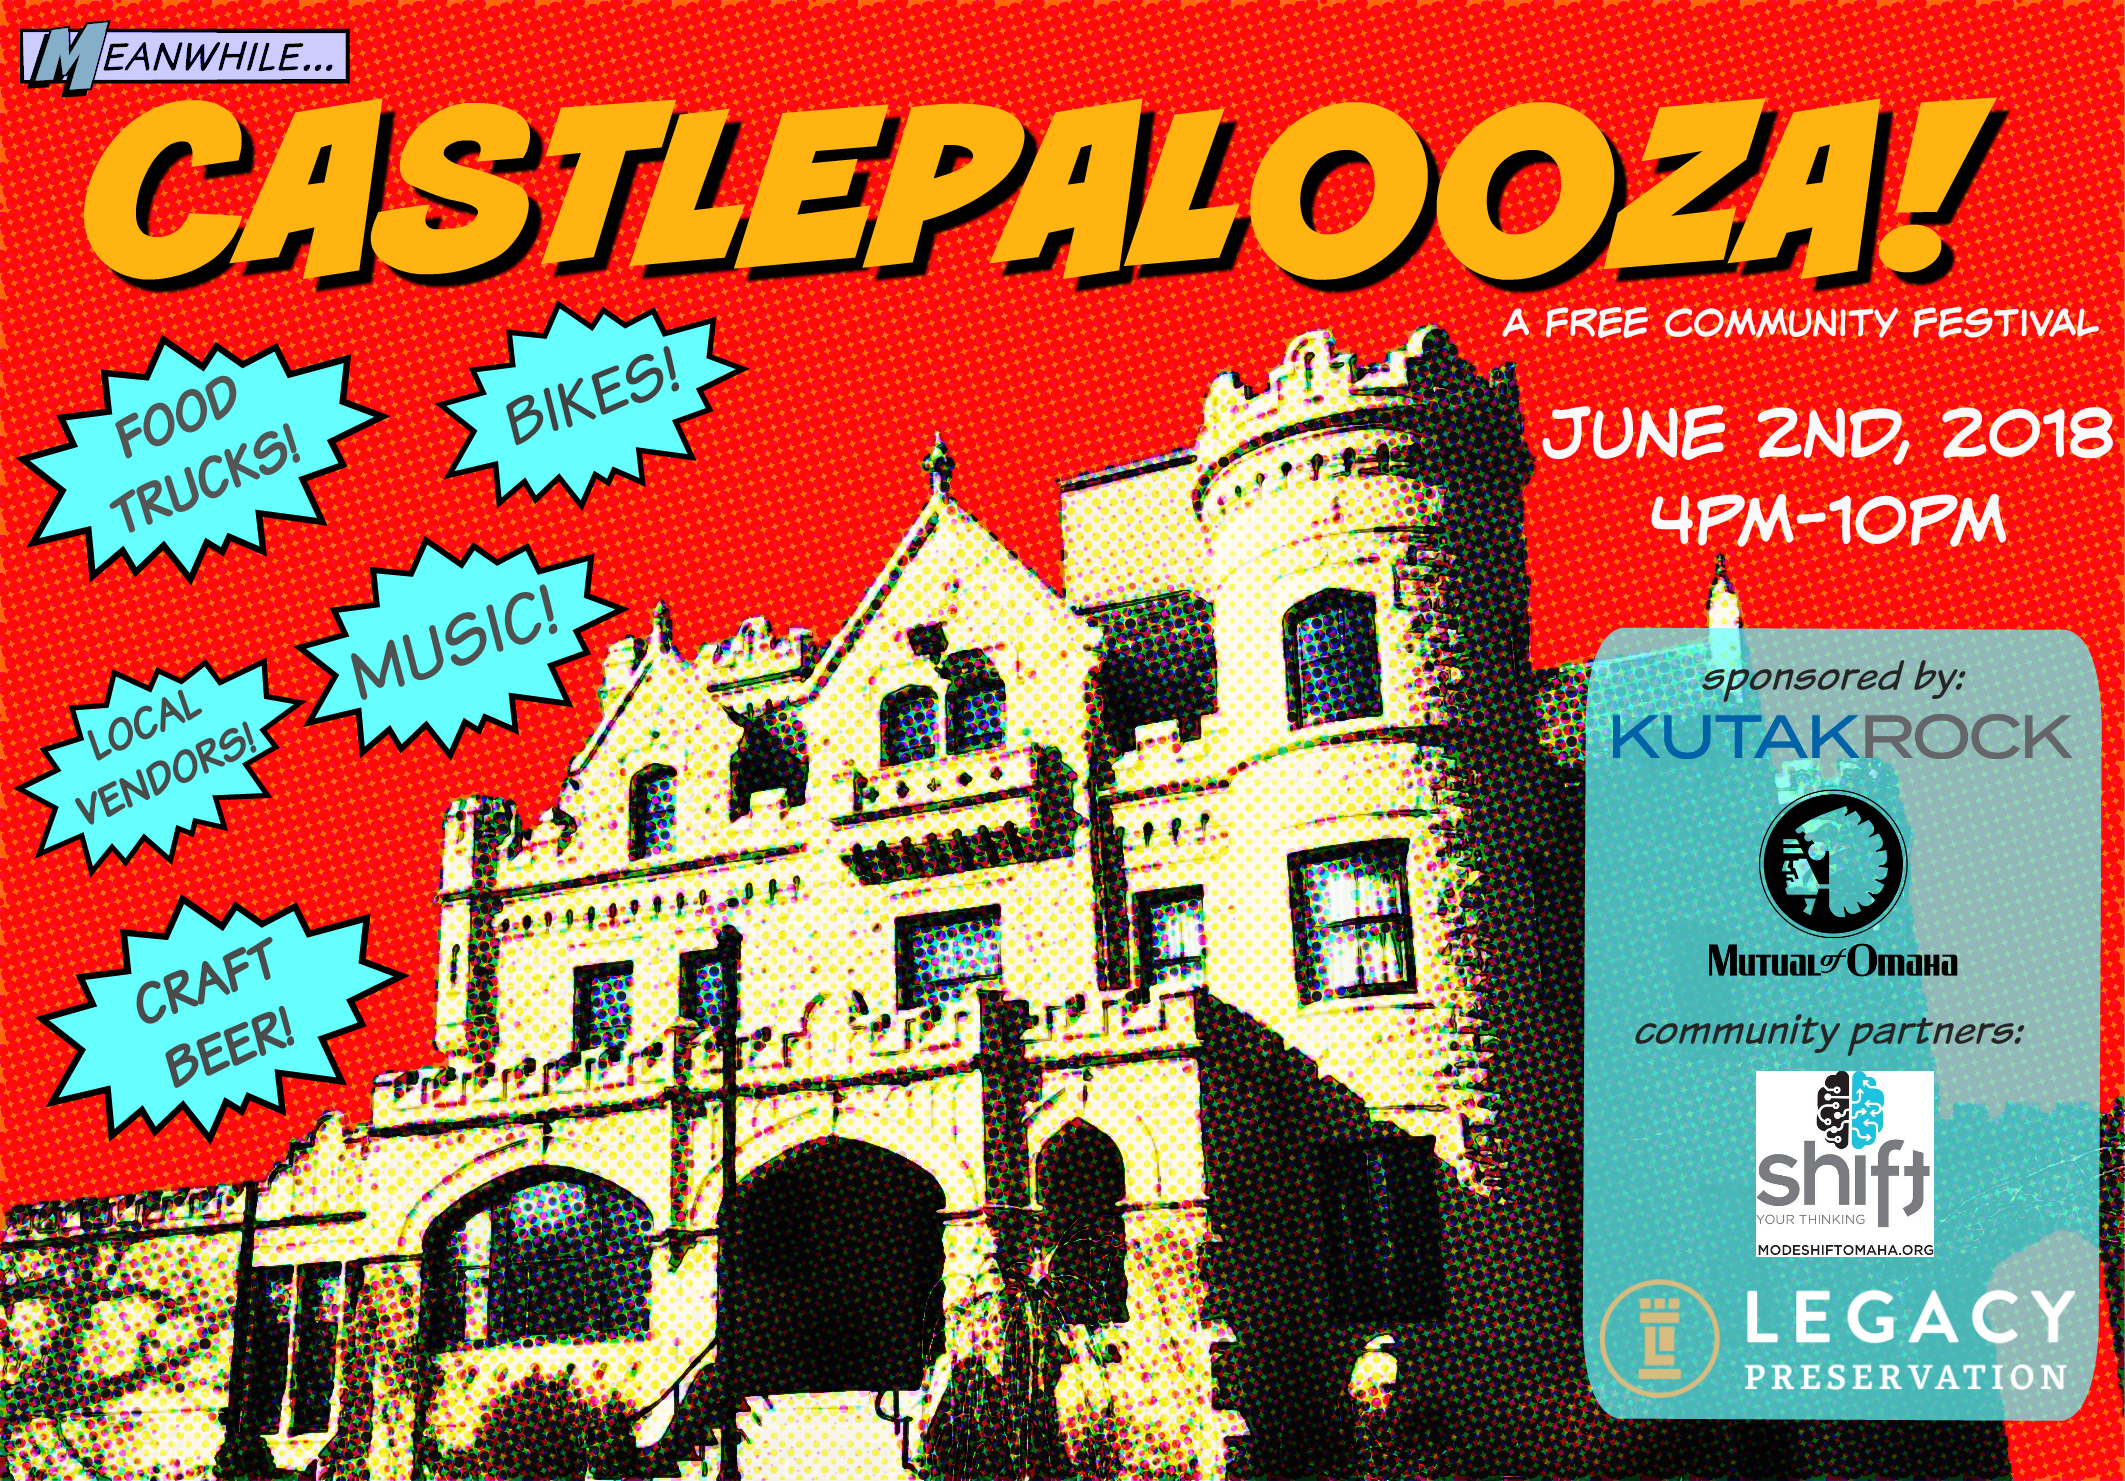 Save the Date for the First Annual Castlepalooza!